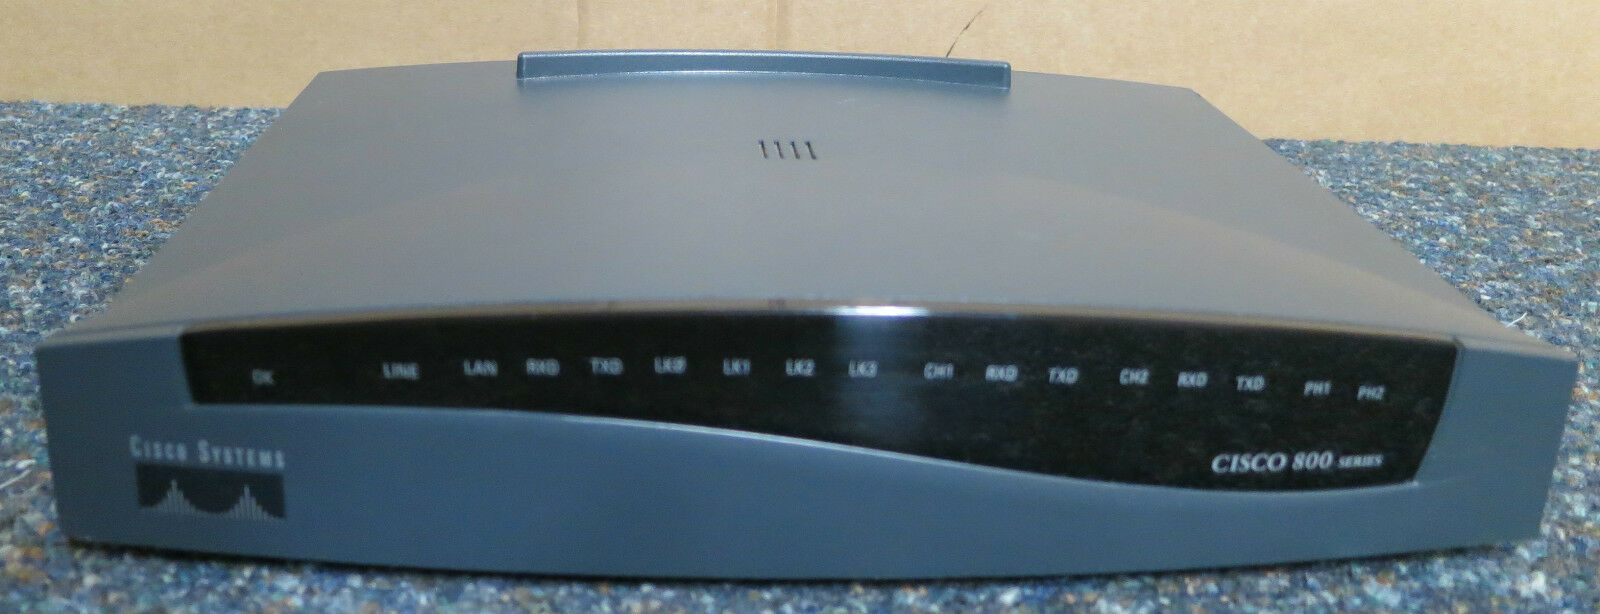 CISCO 800 SERIES 803 Router - ISDN / Console / Ethernet Wired Router ...